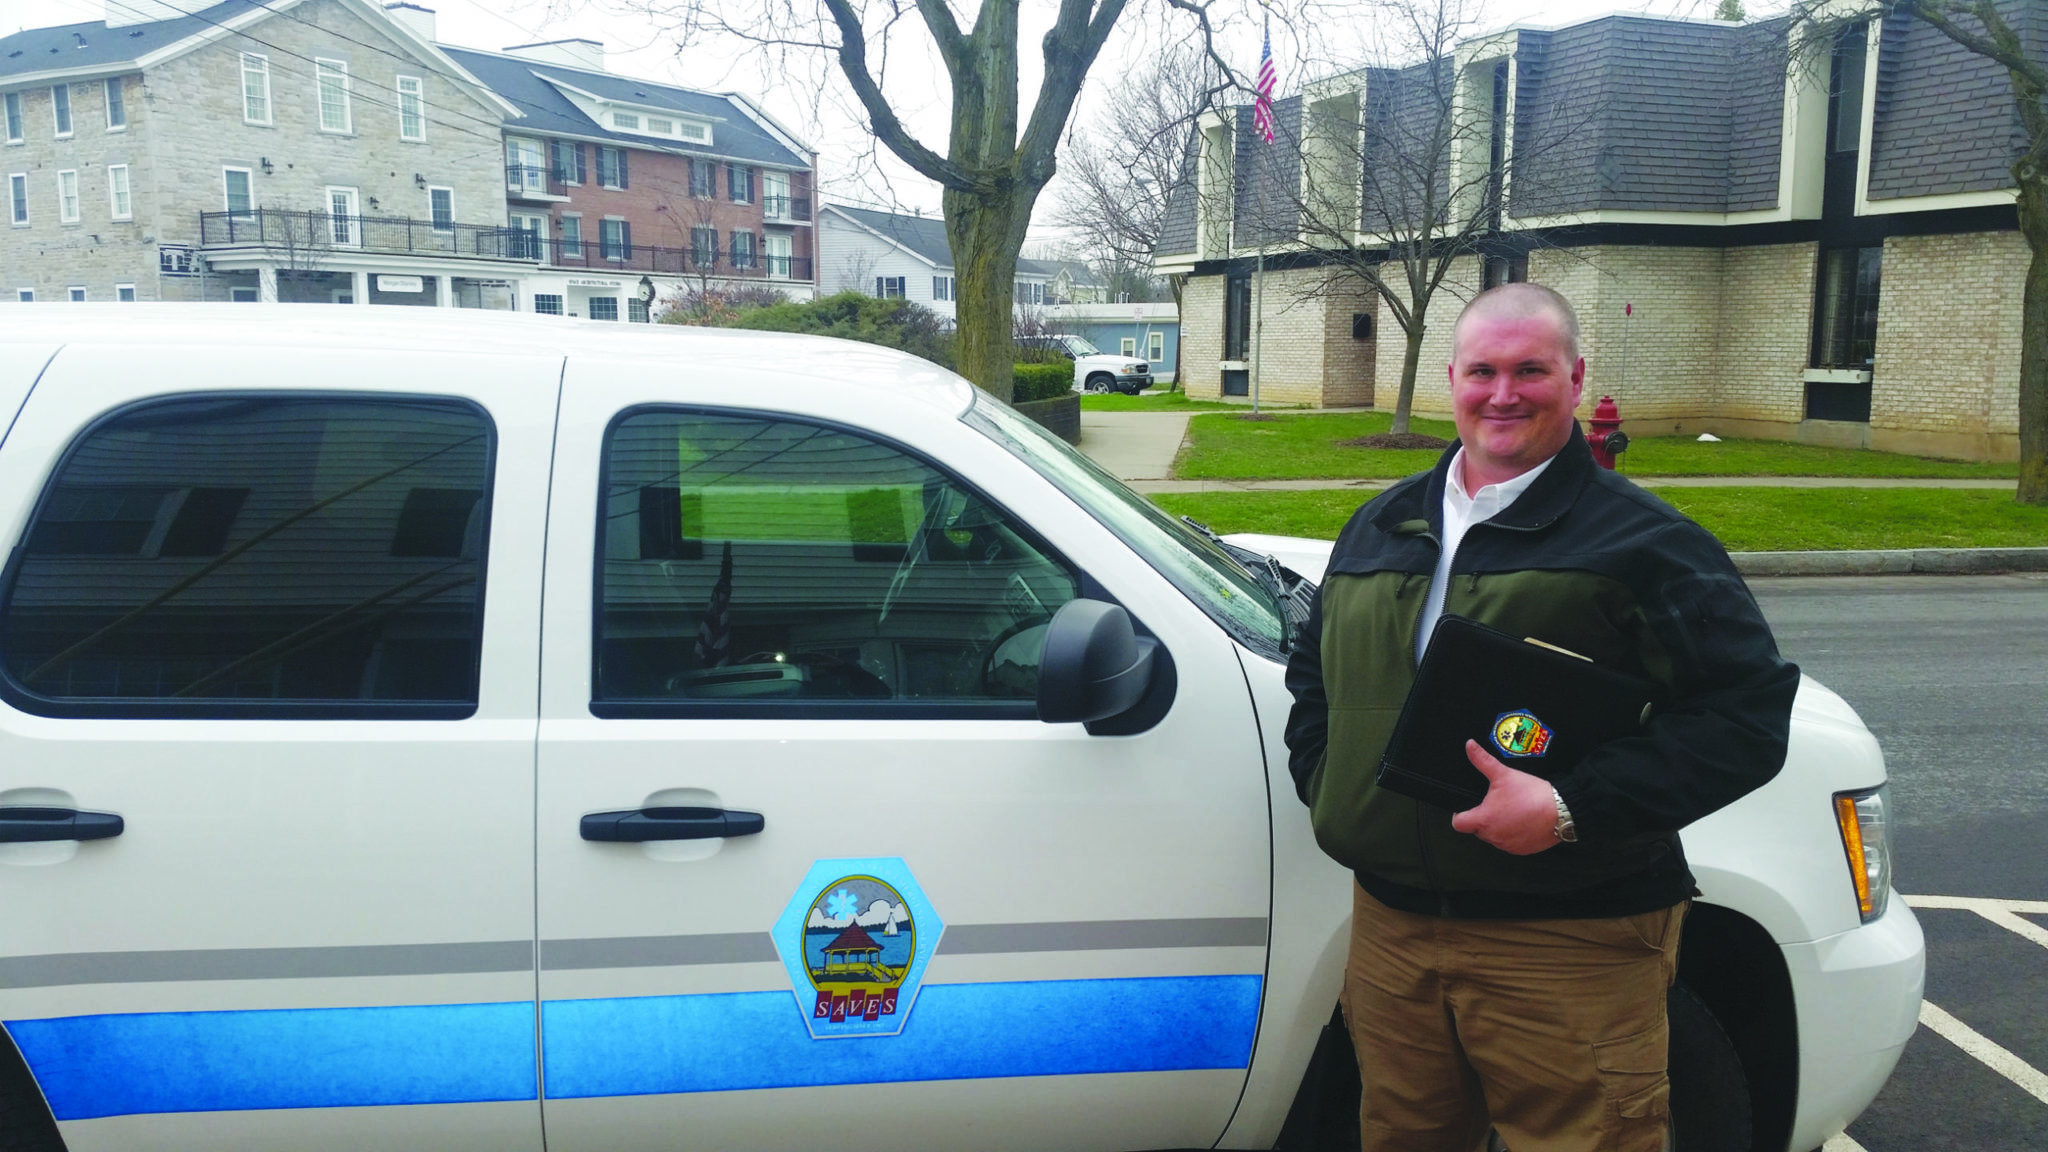 SAVES director honored for leadership